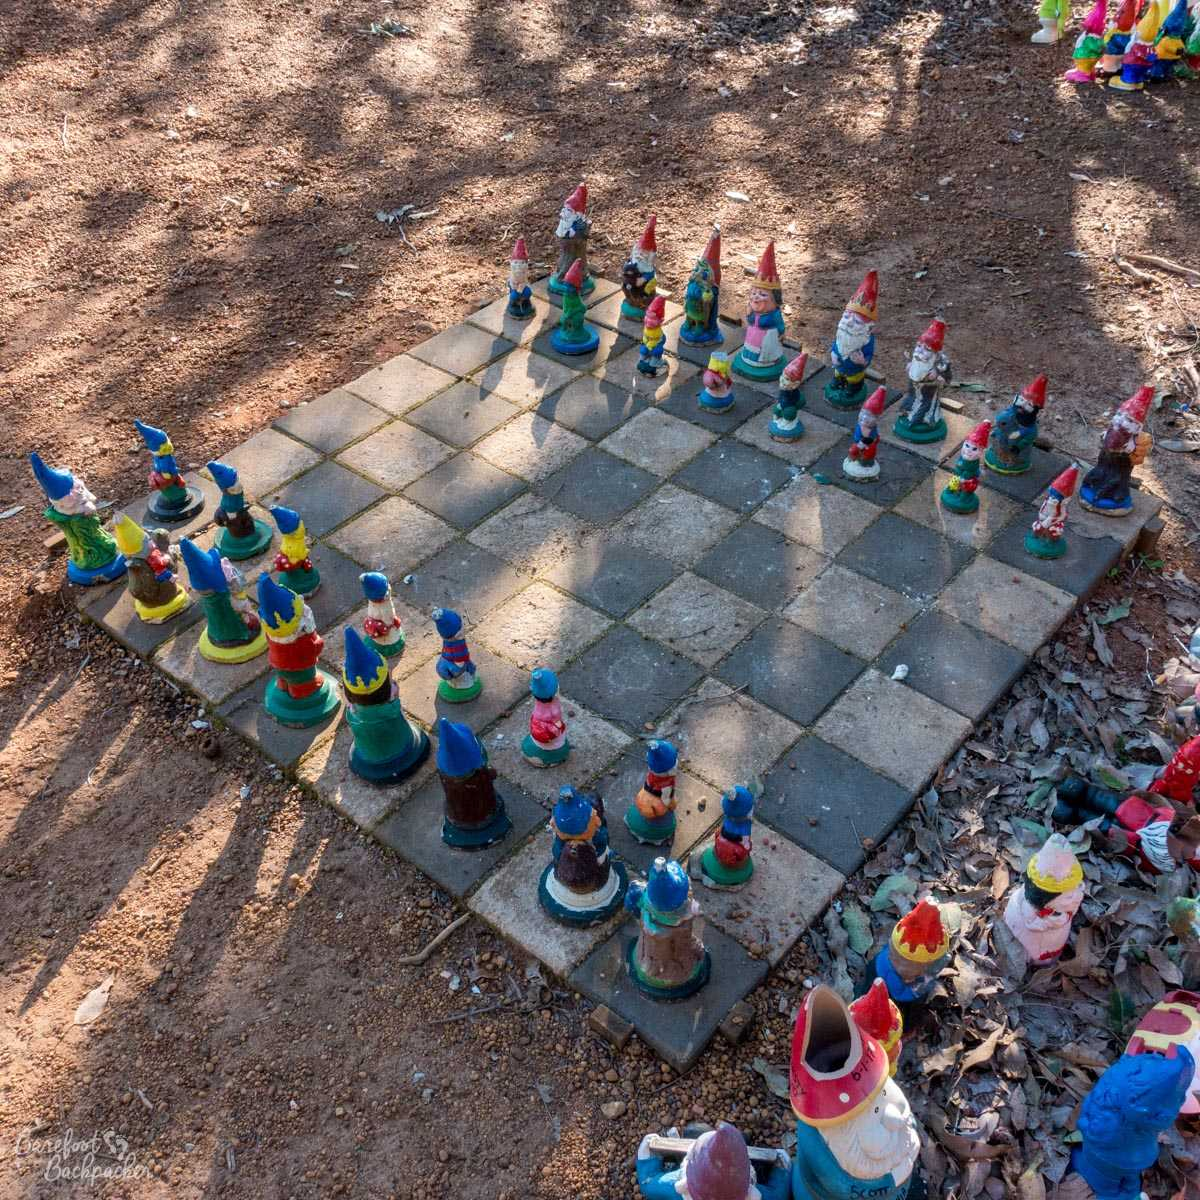 Some more gnomes at Gnomesville, playing chess